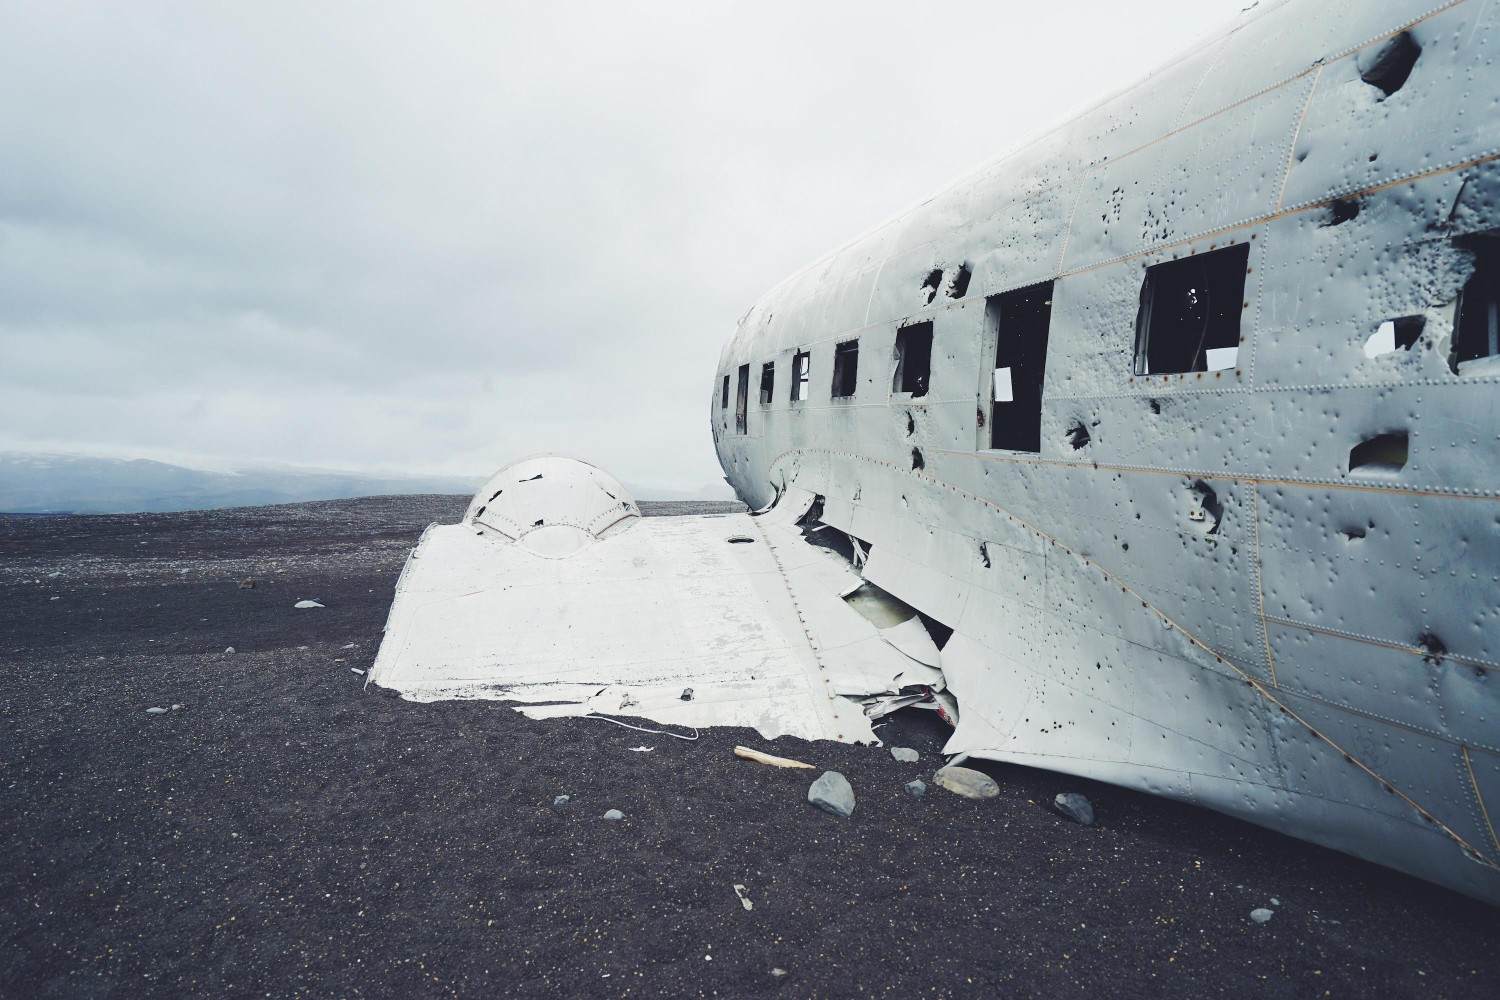 crashed-dc3-airplane-4-vik-iceland-dante-vincent-photography-30